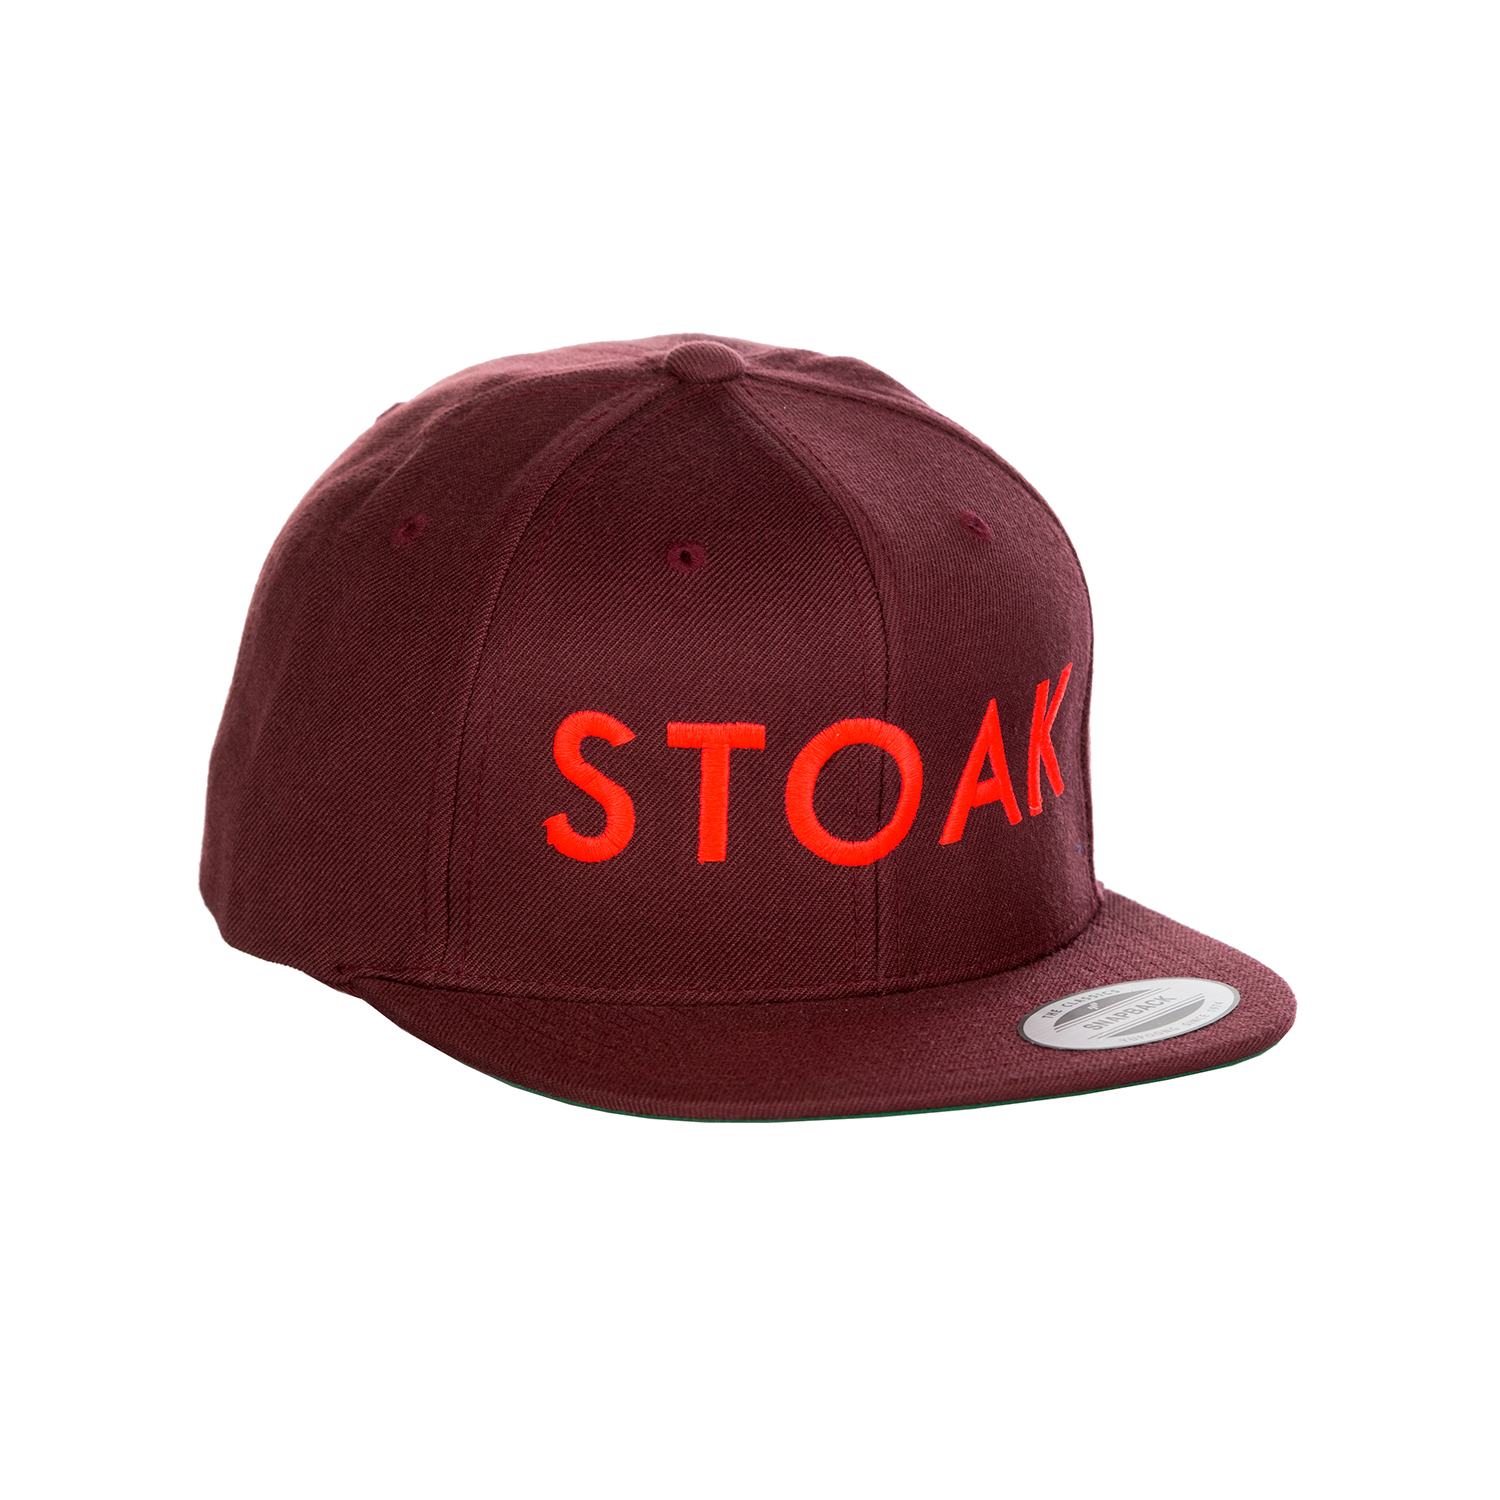 STOAK NEON RUSH Cap